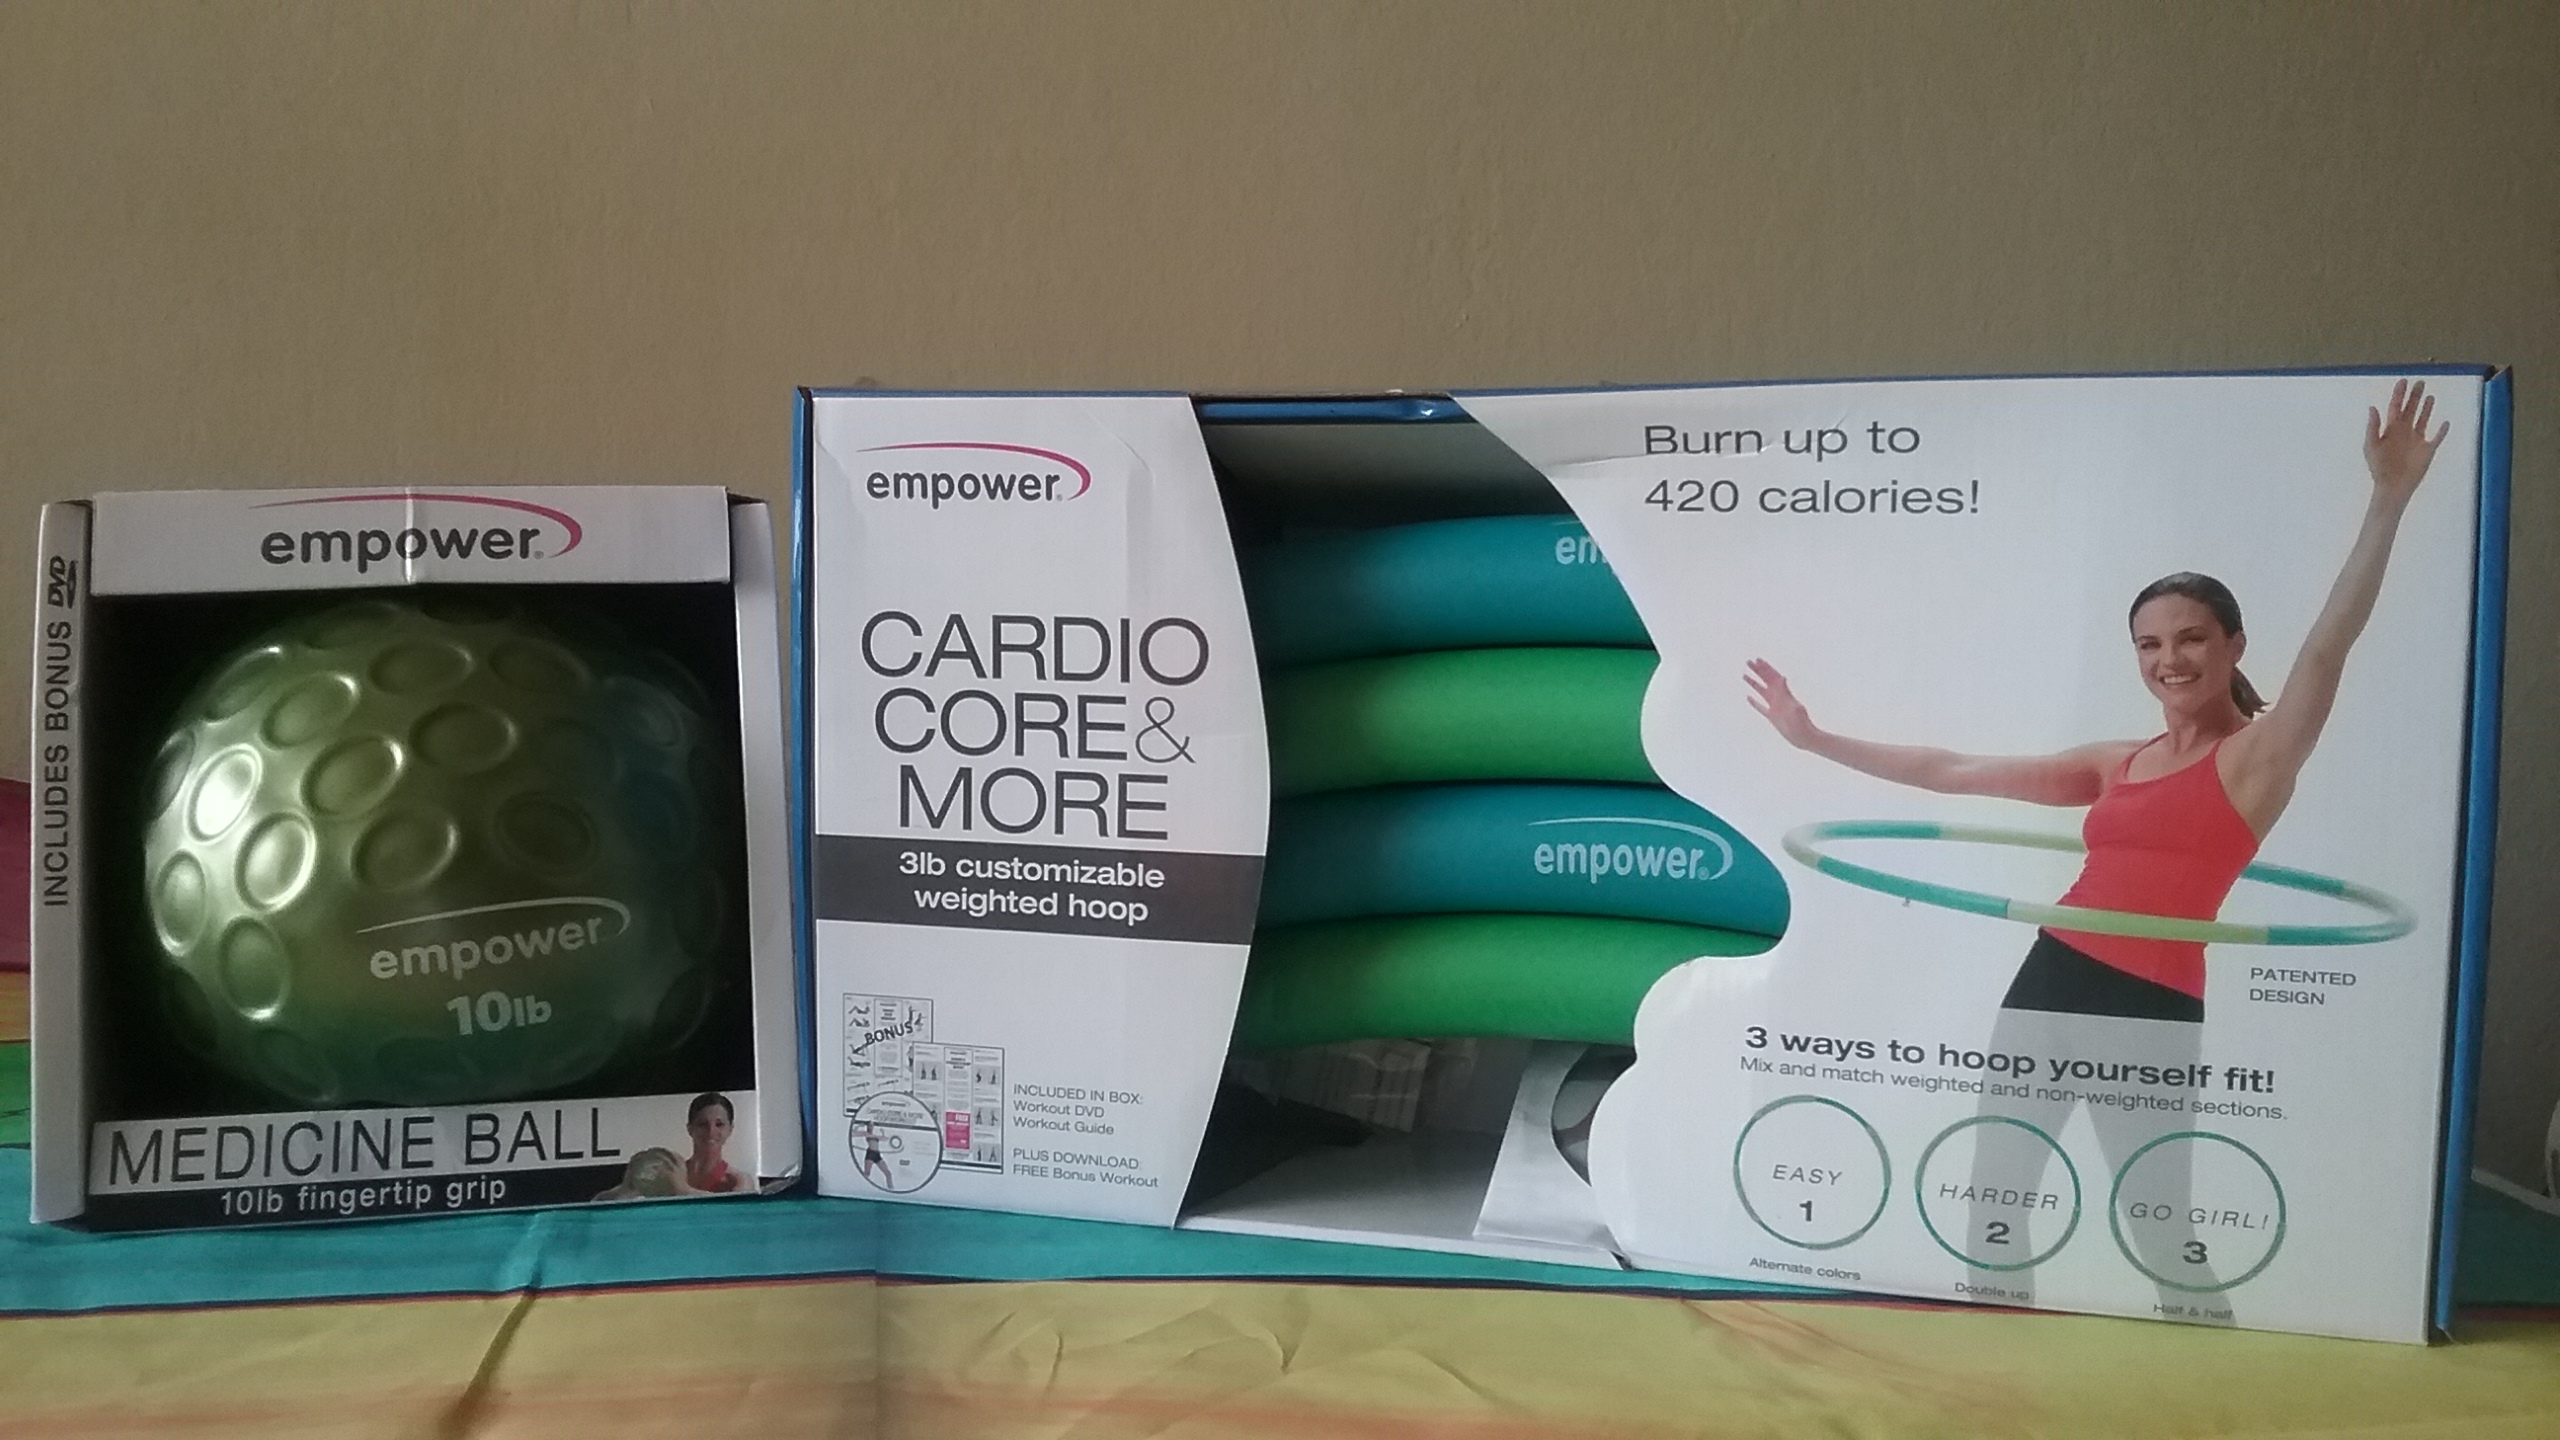 Kick Start Your Workout With EMPOWER Cardio Core Fitness Hoop & Fingertip Grip Medicine Ball